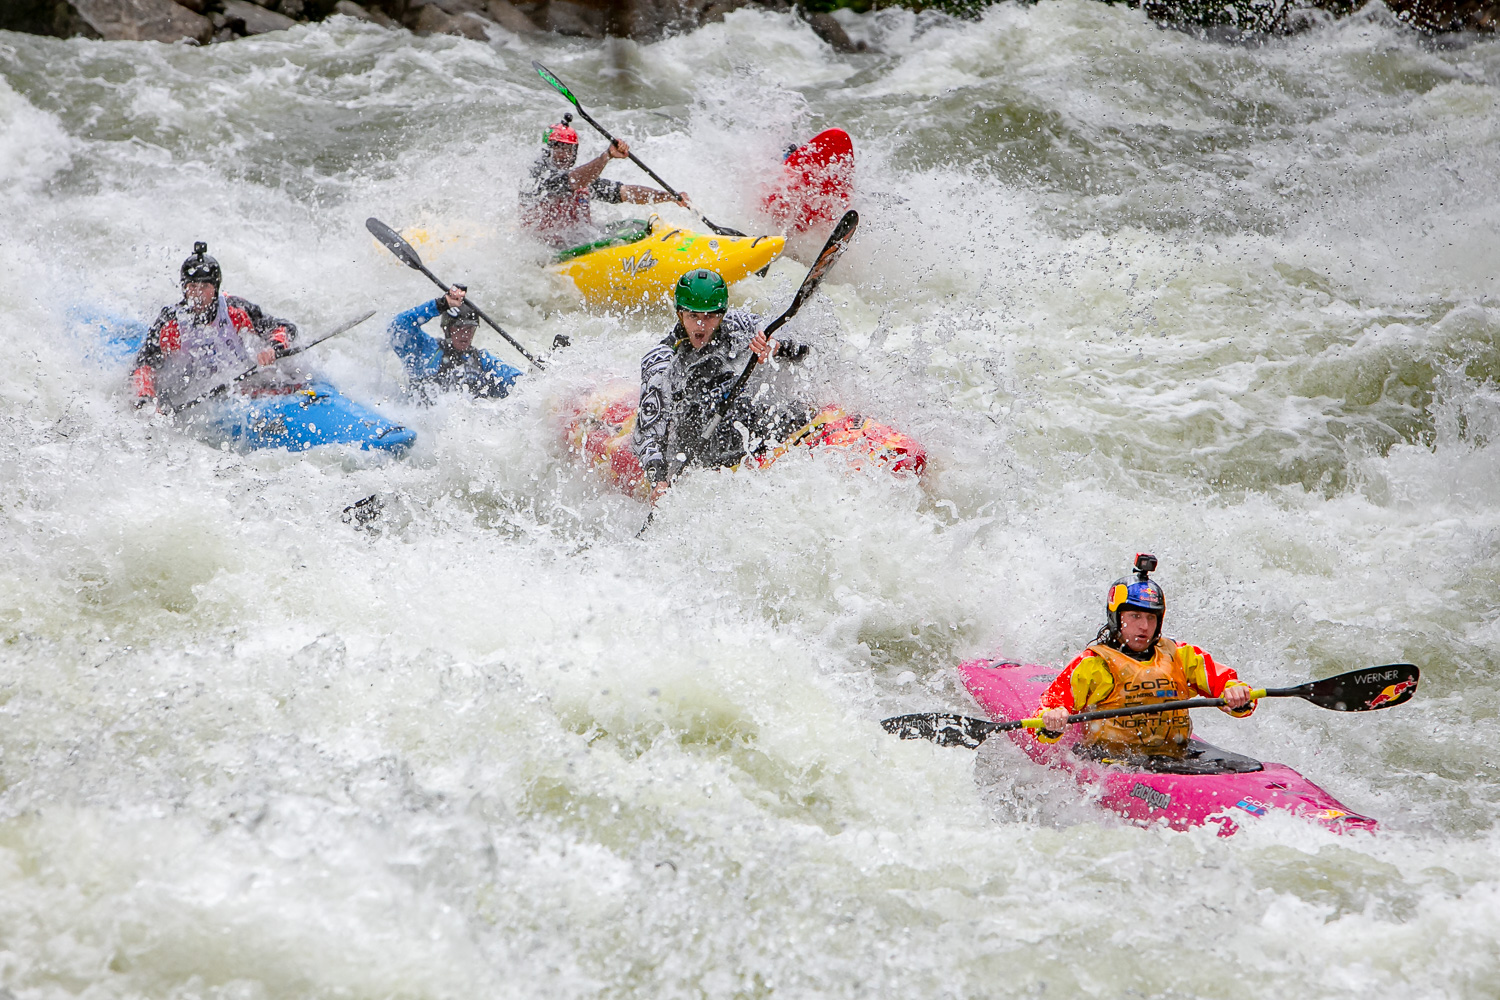 Image: A mixed-light day with the kayakers moving from sun to shade, and fast action. With the need...